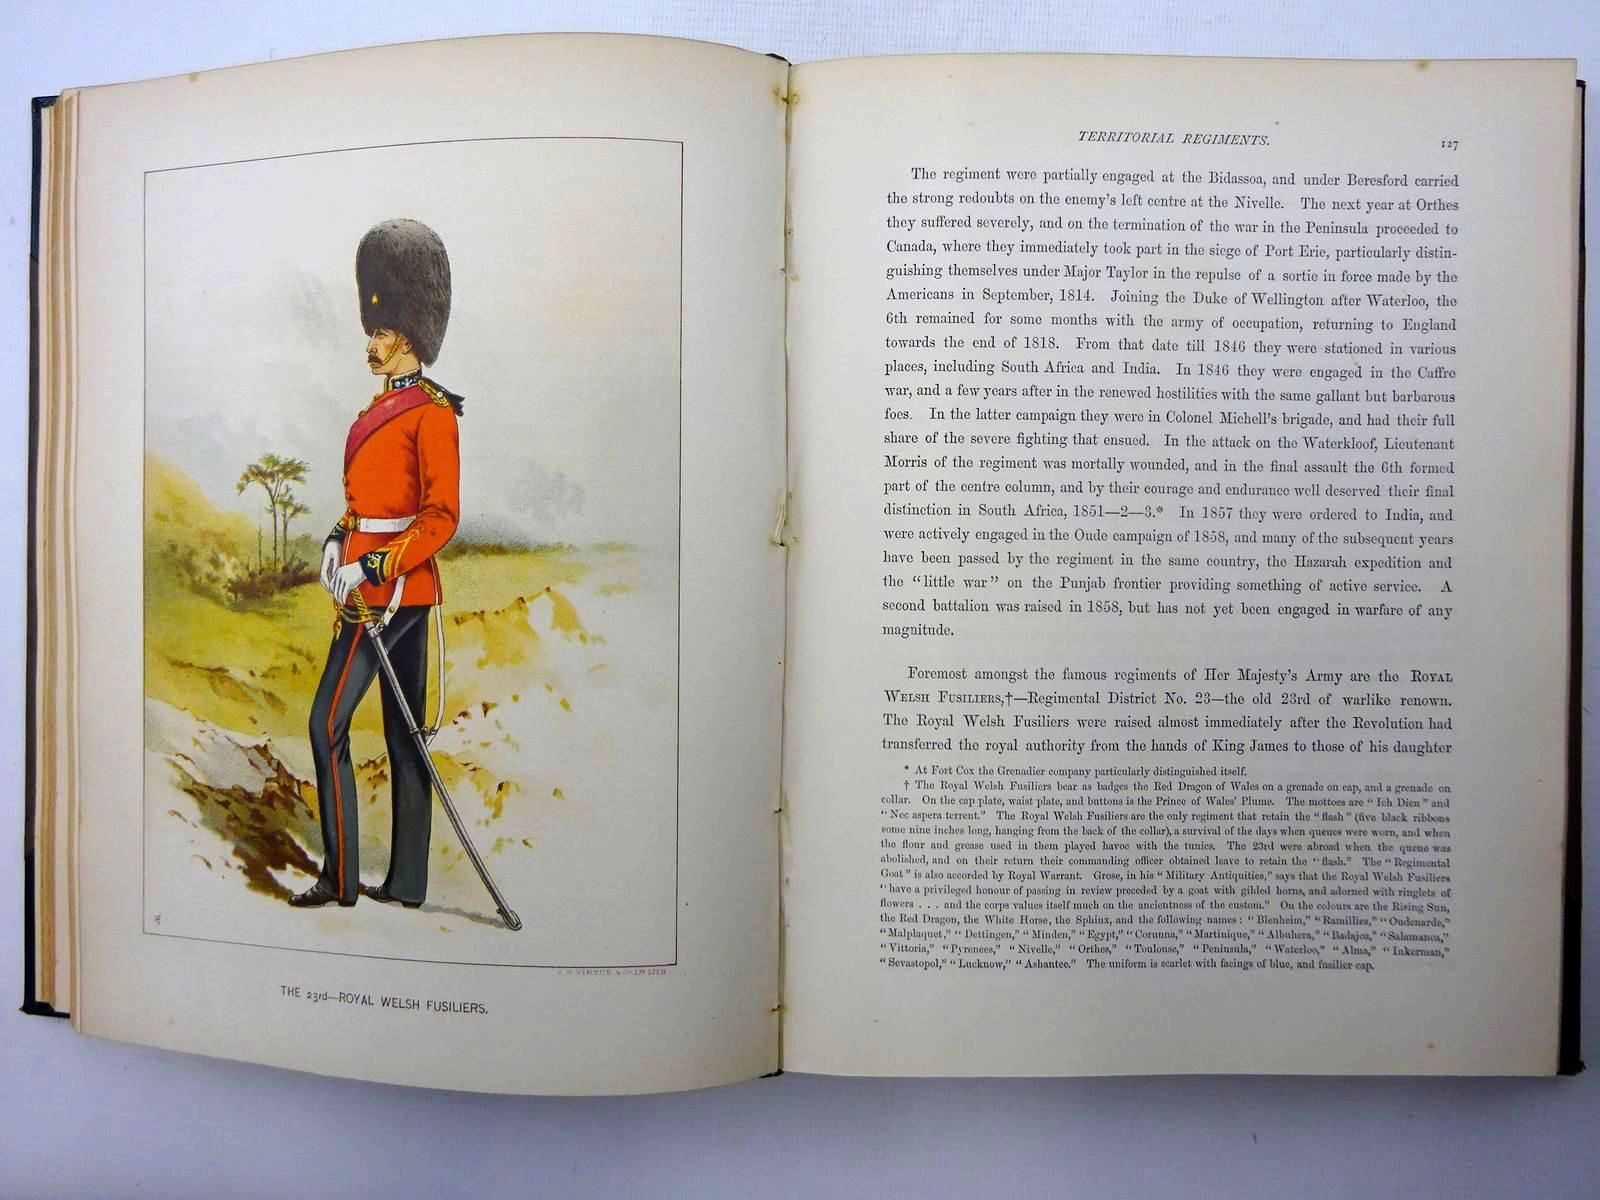 Photo of HER MAJESTY'S ARMY & HER MAJESTY'S INDIAN AND COLONIAL FORCES (3 VOLUMES) written by Richards, Walter illustrated by Giles, G.D. published by J.S. Virtue & Co Limited (STOCK CODE: 1816293)  for sale by Stella & Rose's Books